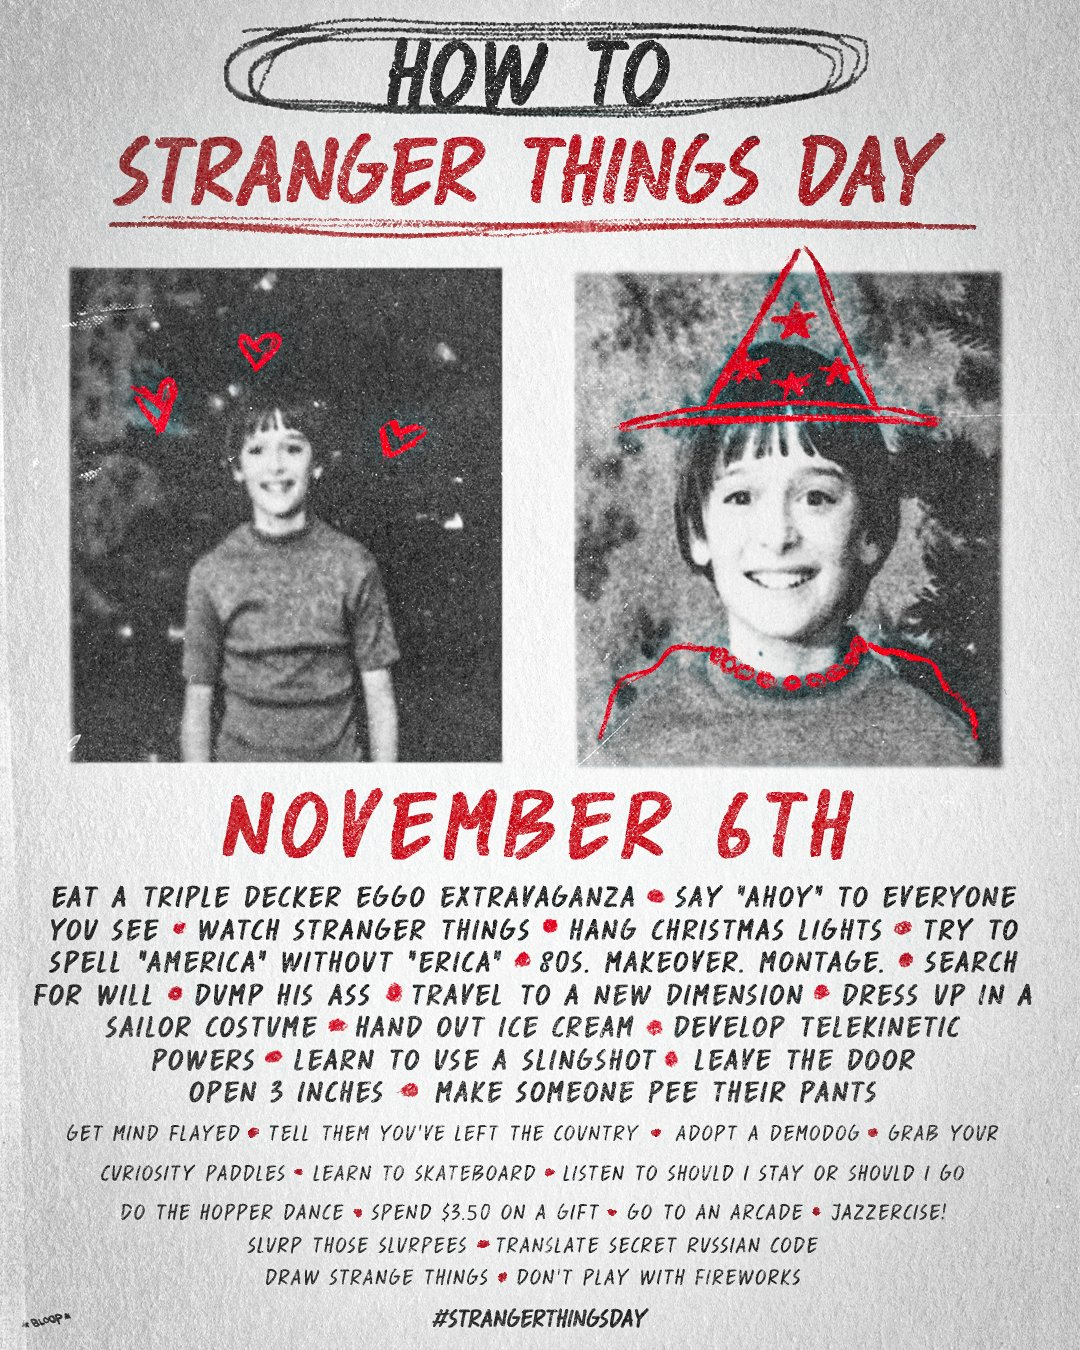 How to Celebrate Stranger Things Day